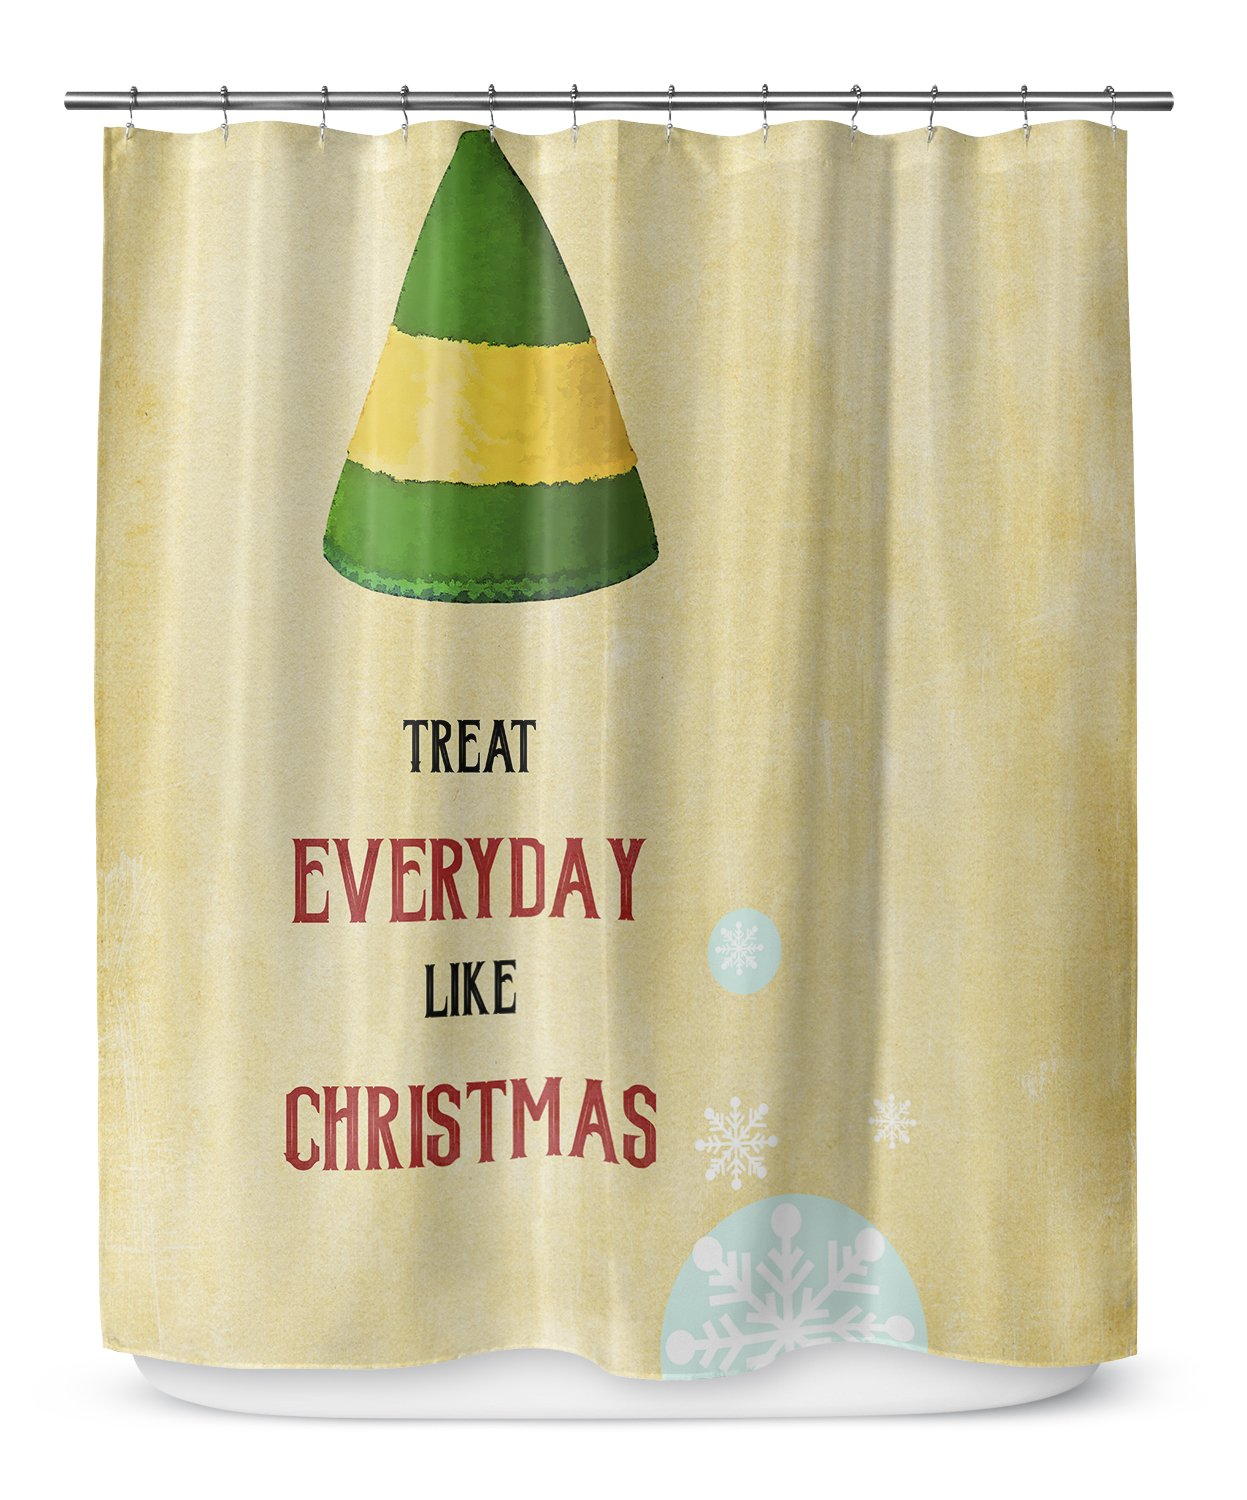 KAVKA DESIGNS Everyday Christmas Shower Curtain, (Gold/Red/Green) - TRADITIONS Collection, Size: 70x90 - (TELAVC1046LPLSC)